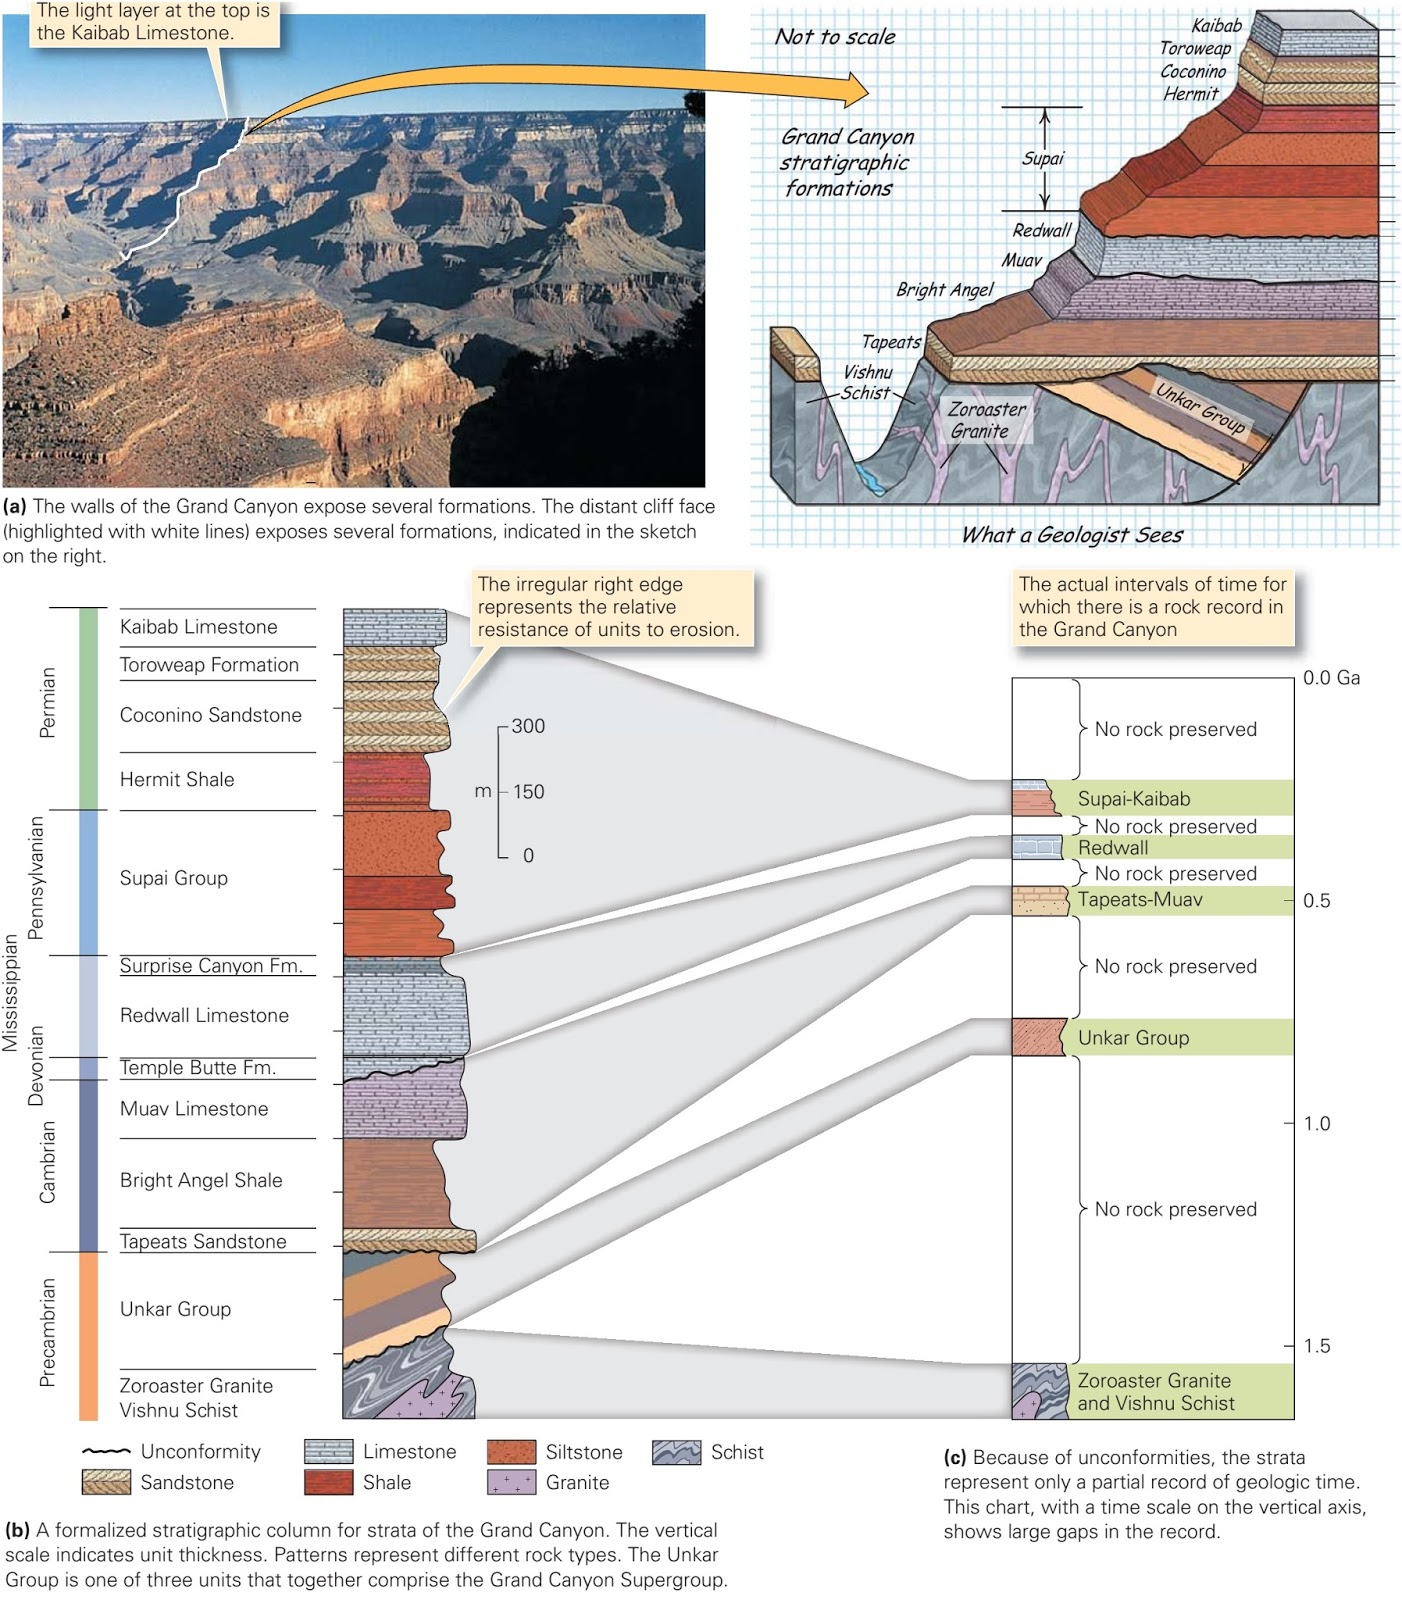 medium resolution of the stratigraphic formations and stratigraphic column for the grand canyon in arizona